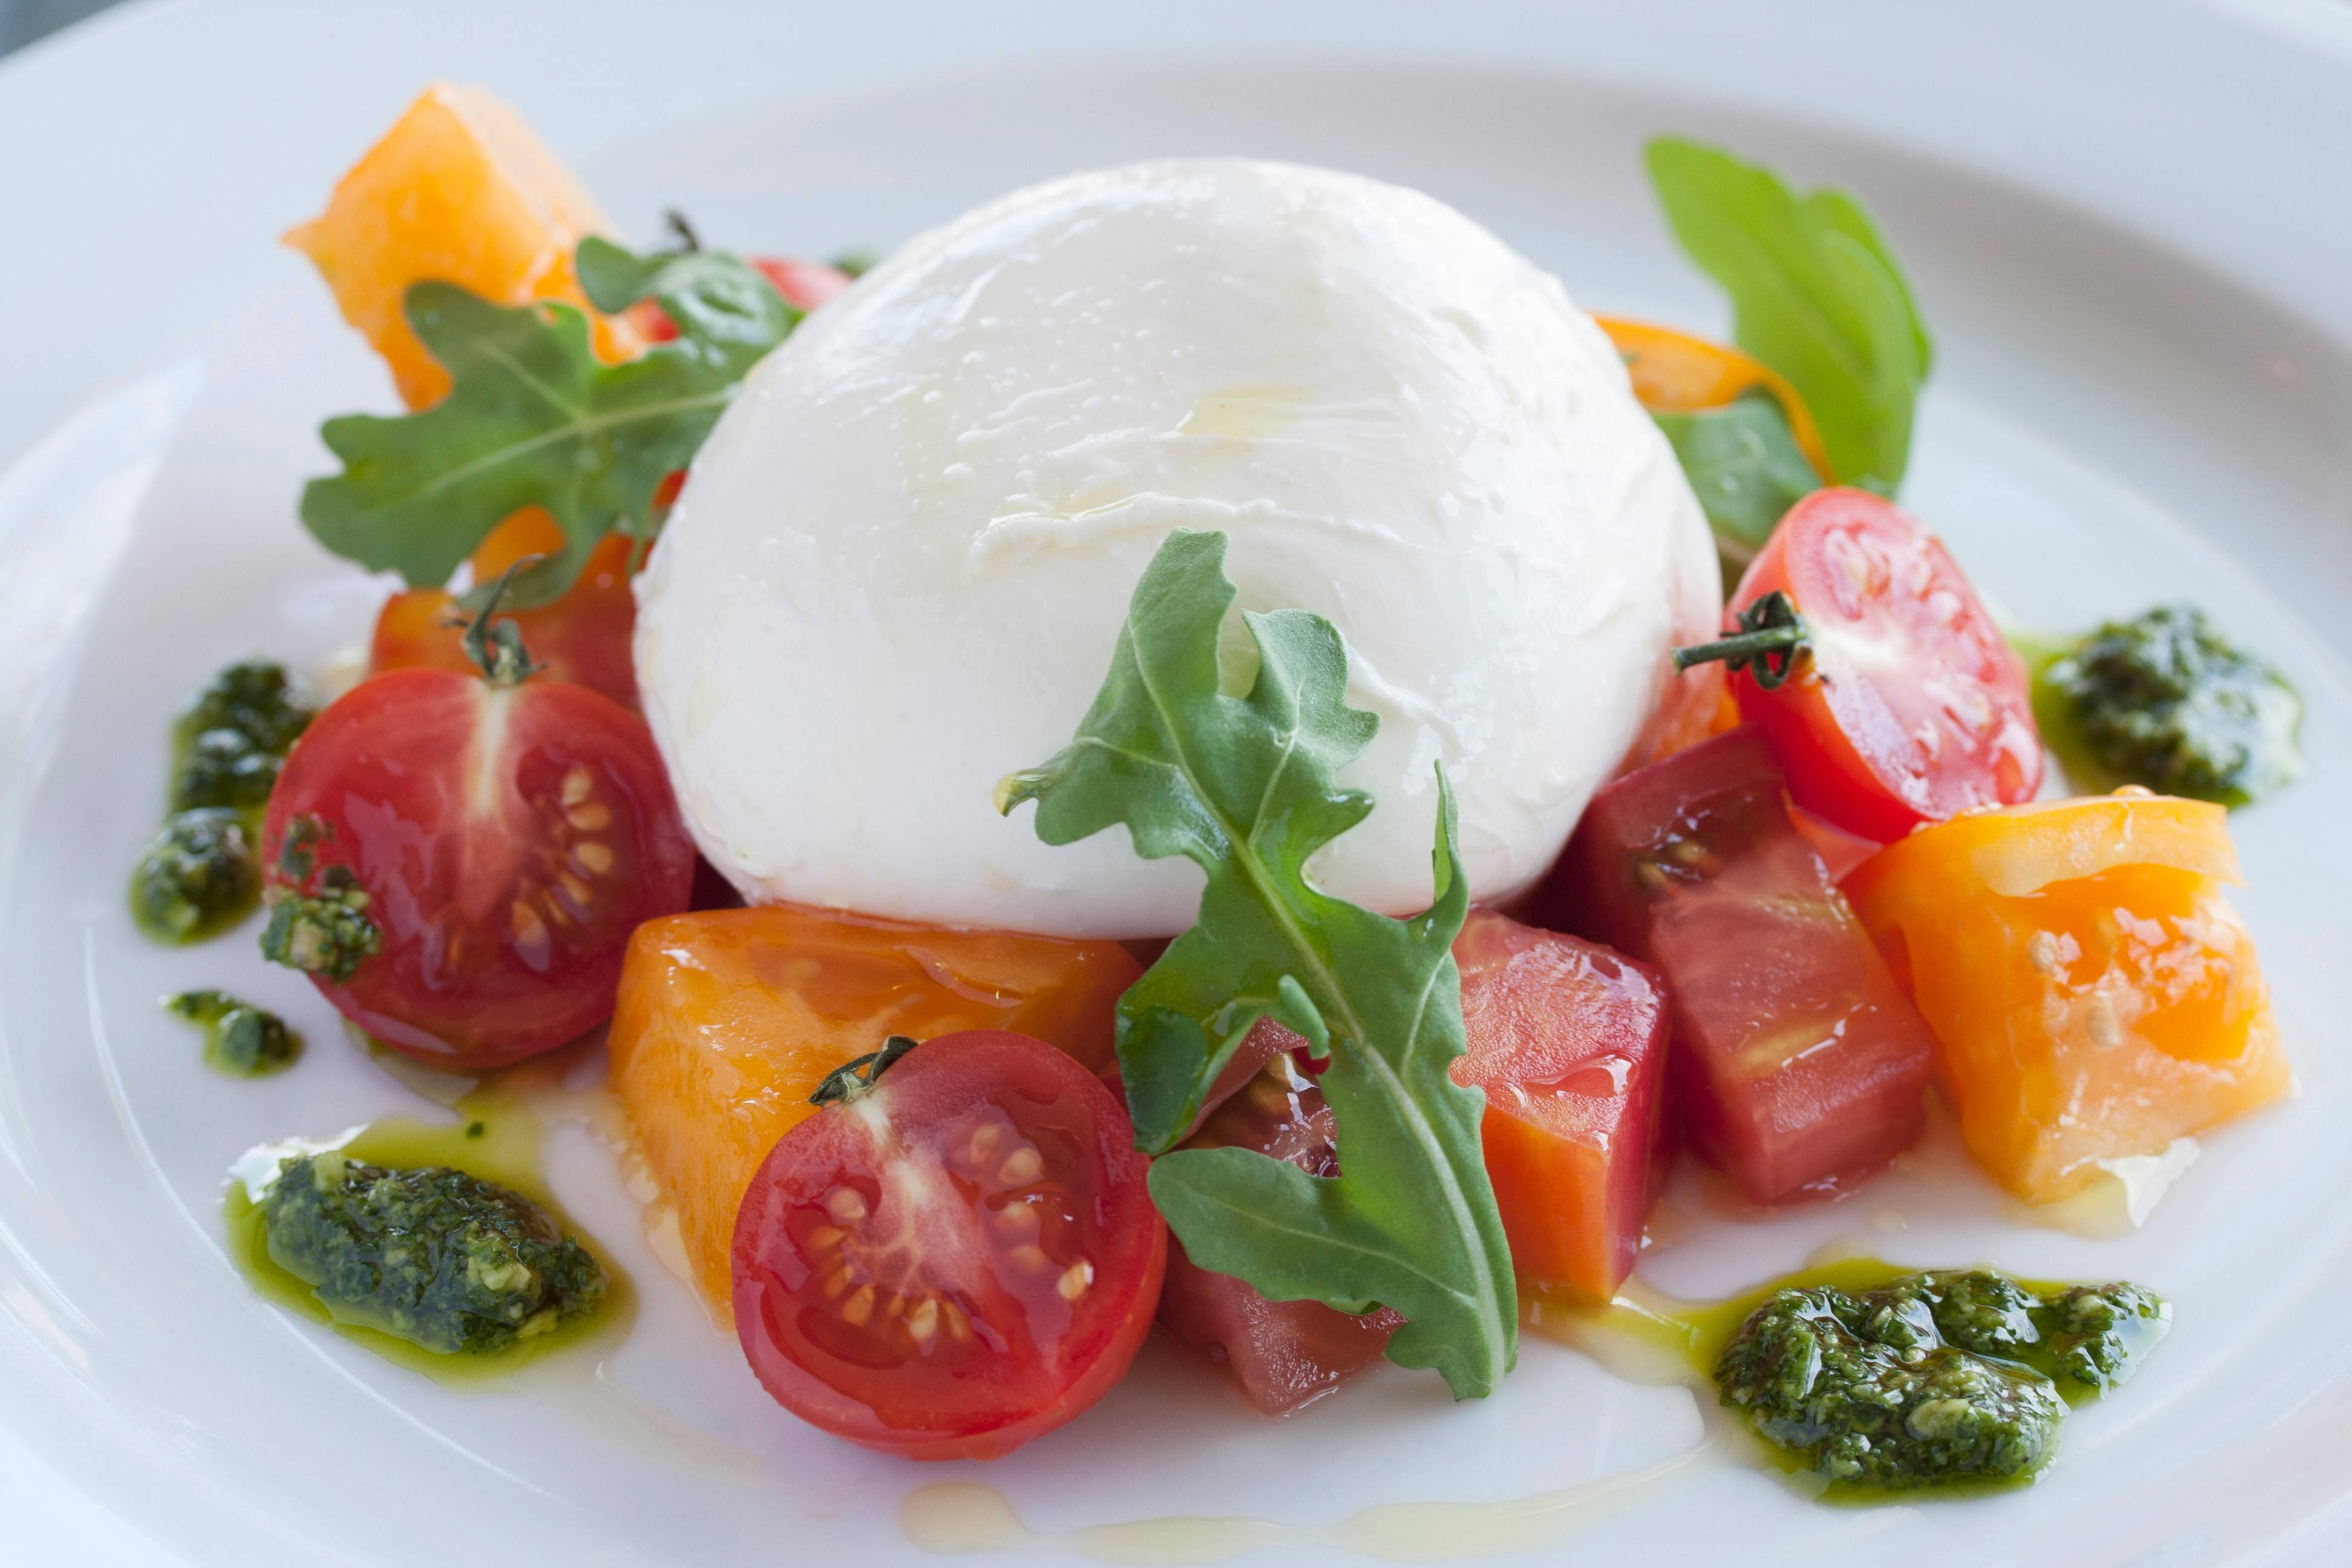 Tomato Fest at Francesca's at The Promenade runs through Aug. 31.